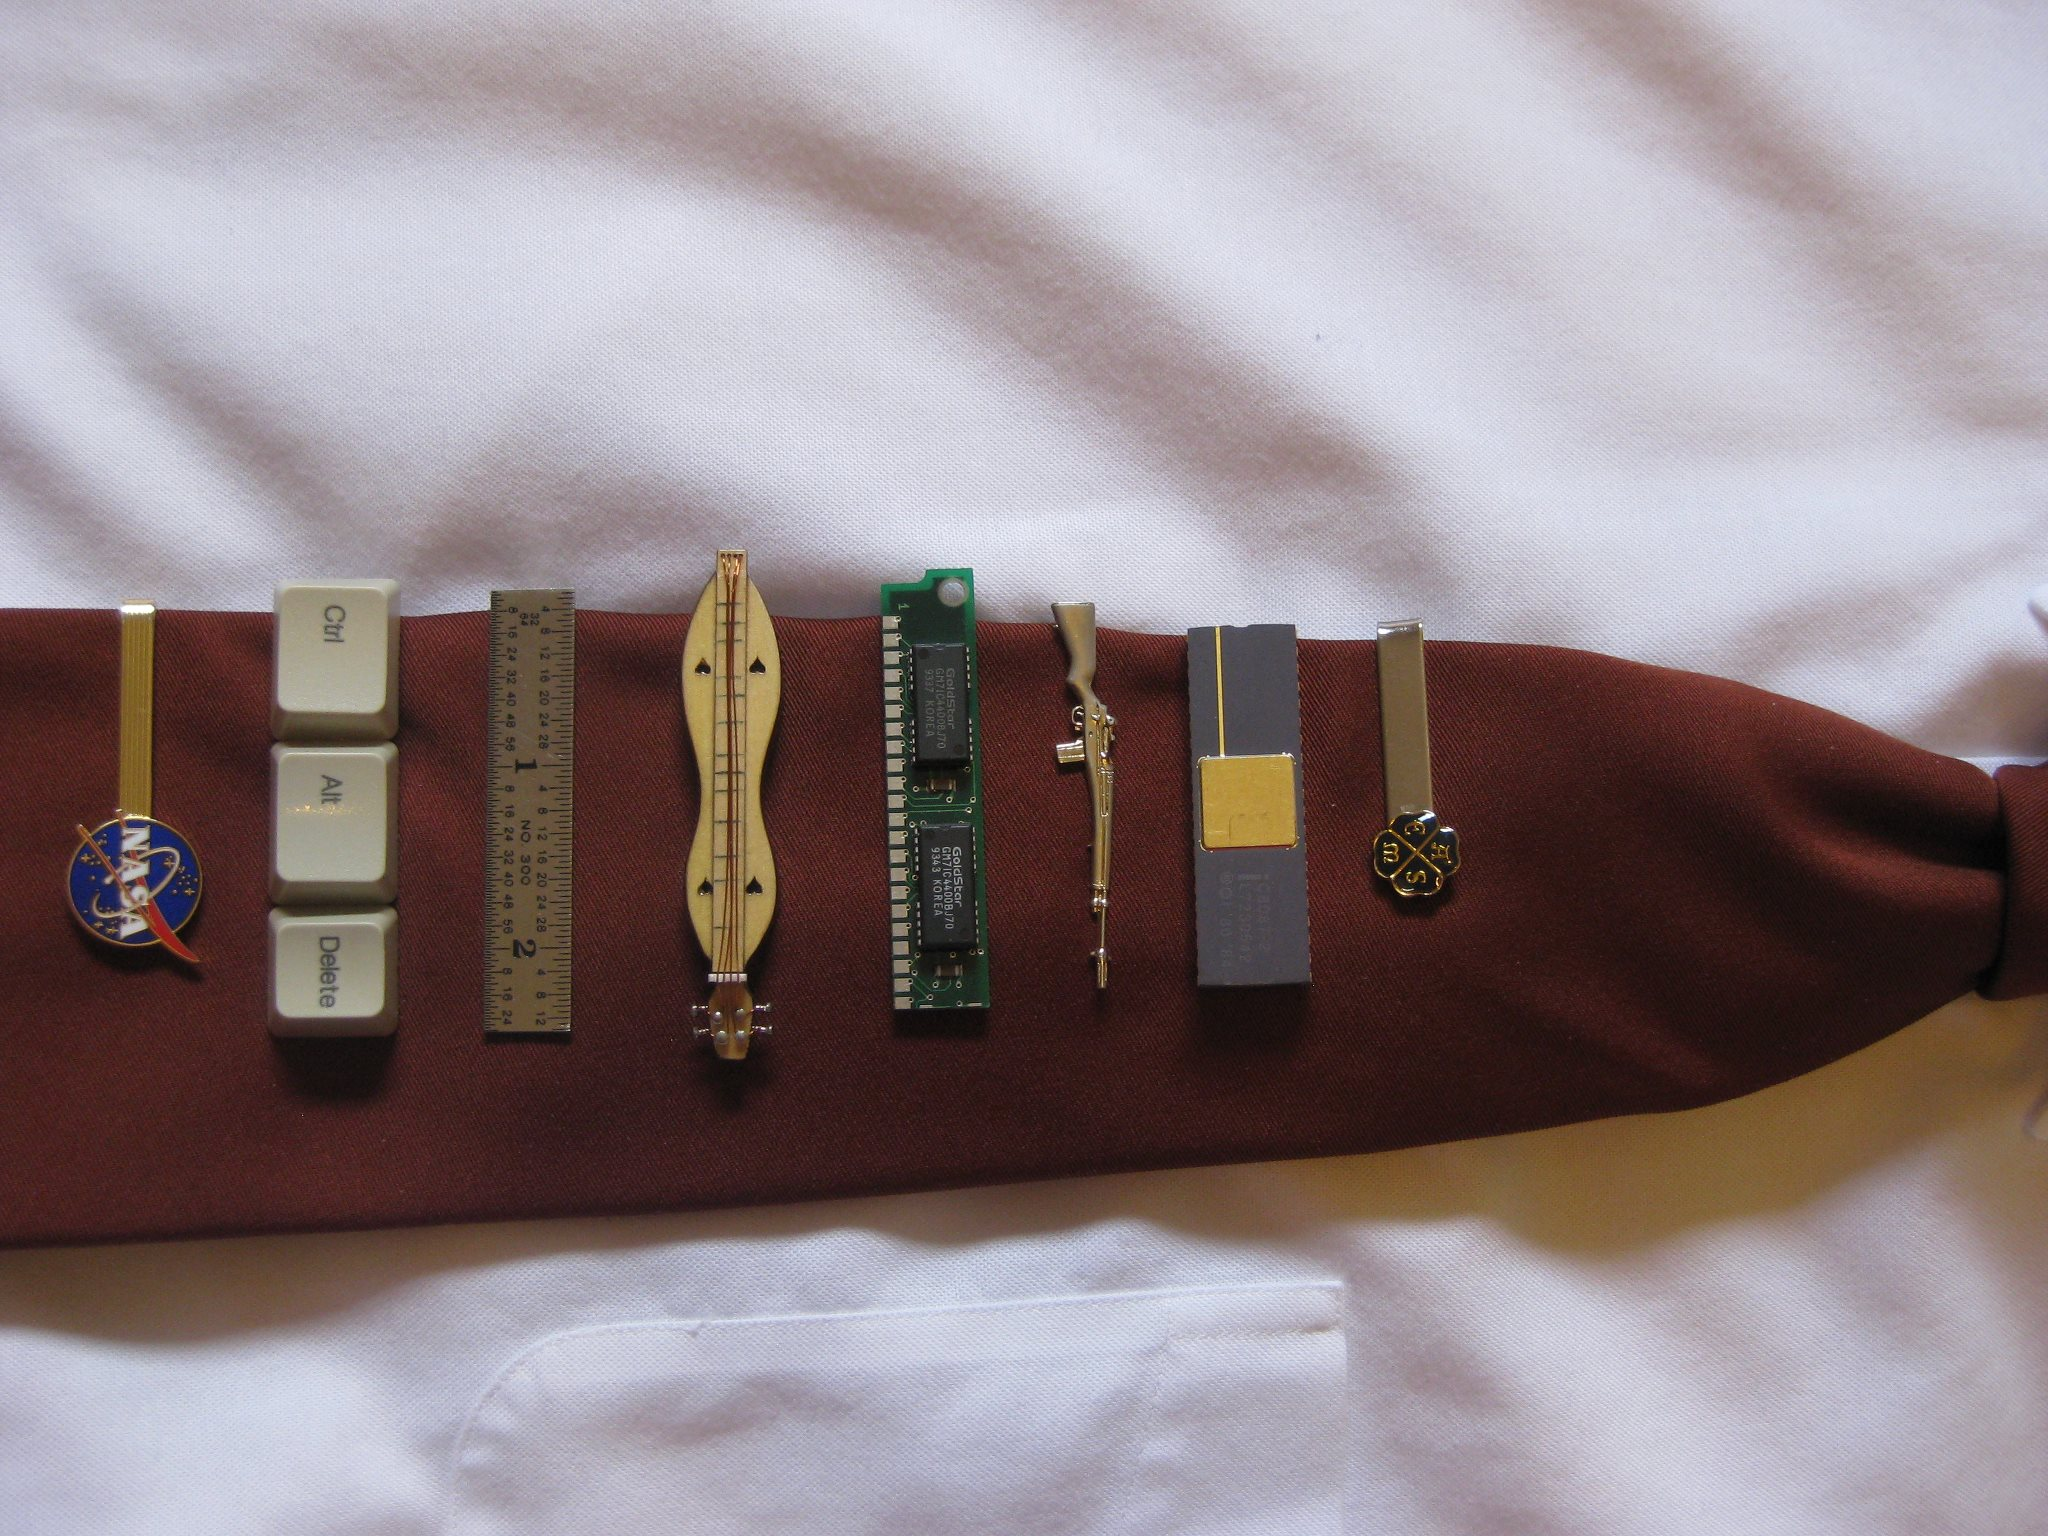 A collection of tie clips worn by Kevin Cole, professor of mechanical and materials engineering.